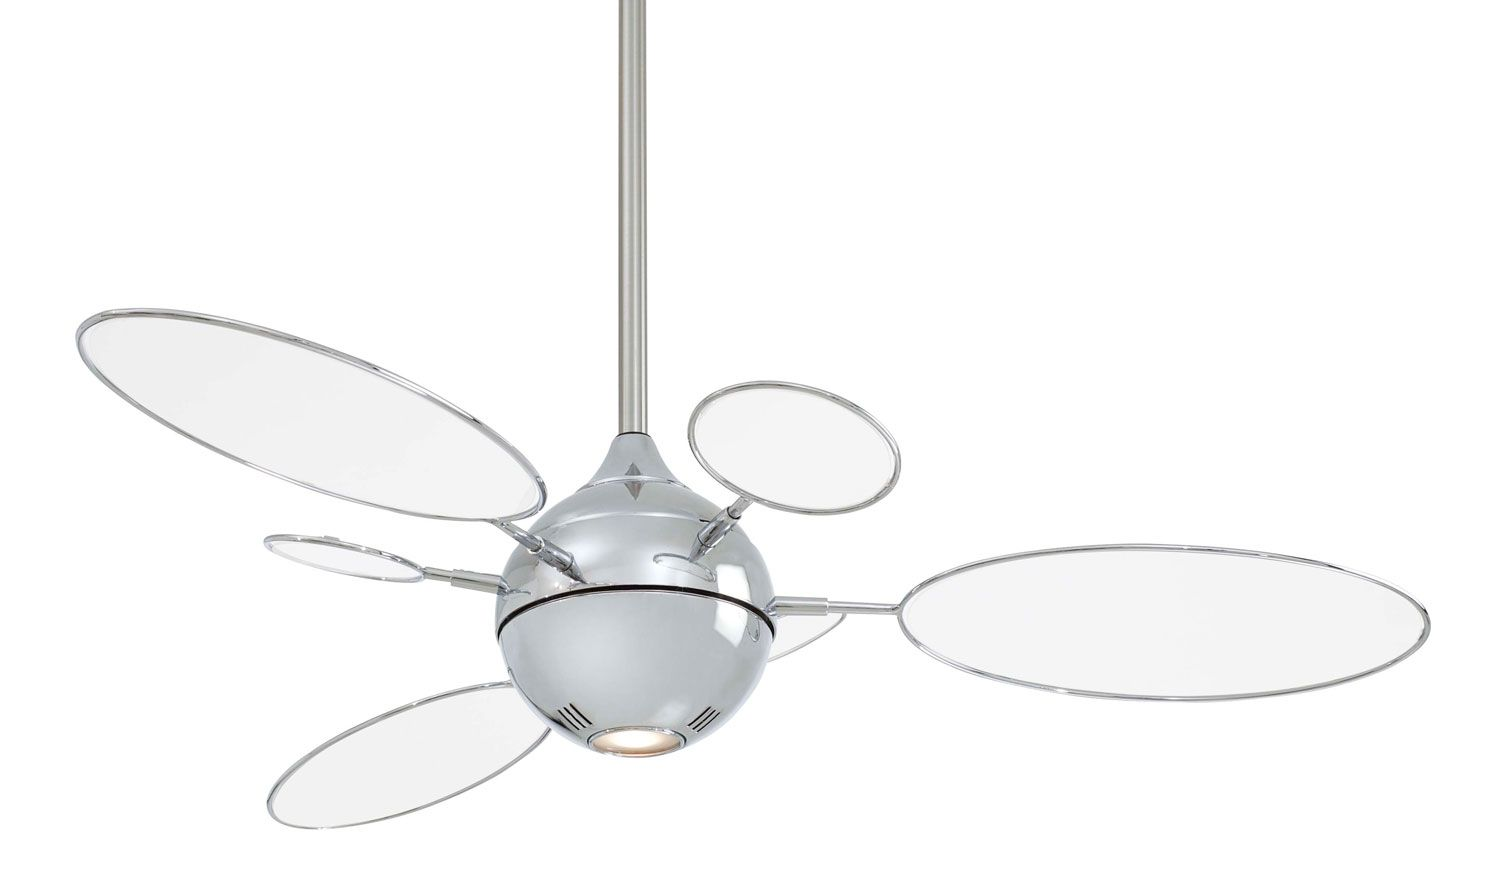 54 Ceiling Fan With Light And Wall Control We Bet You